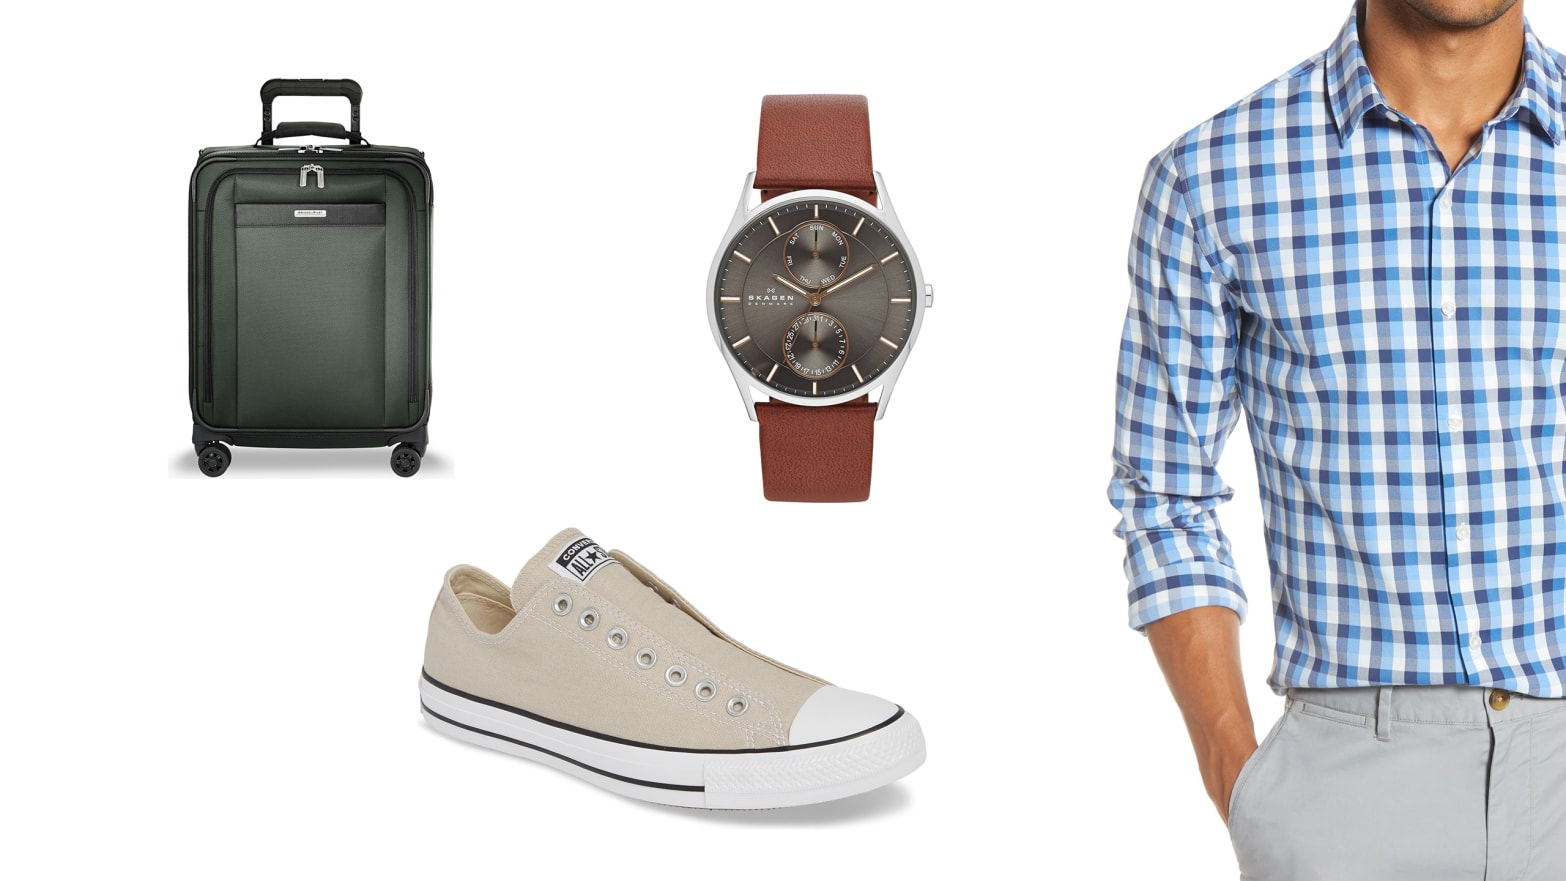 Nordstrom's Sale Saves You Up to 40% On Top Menswear Brands